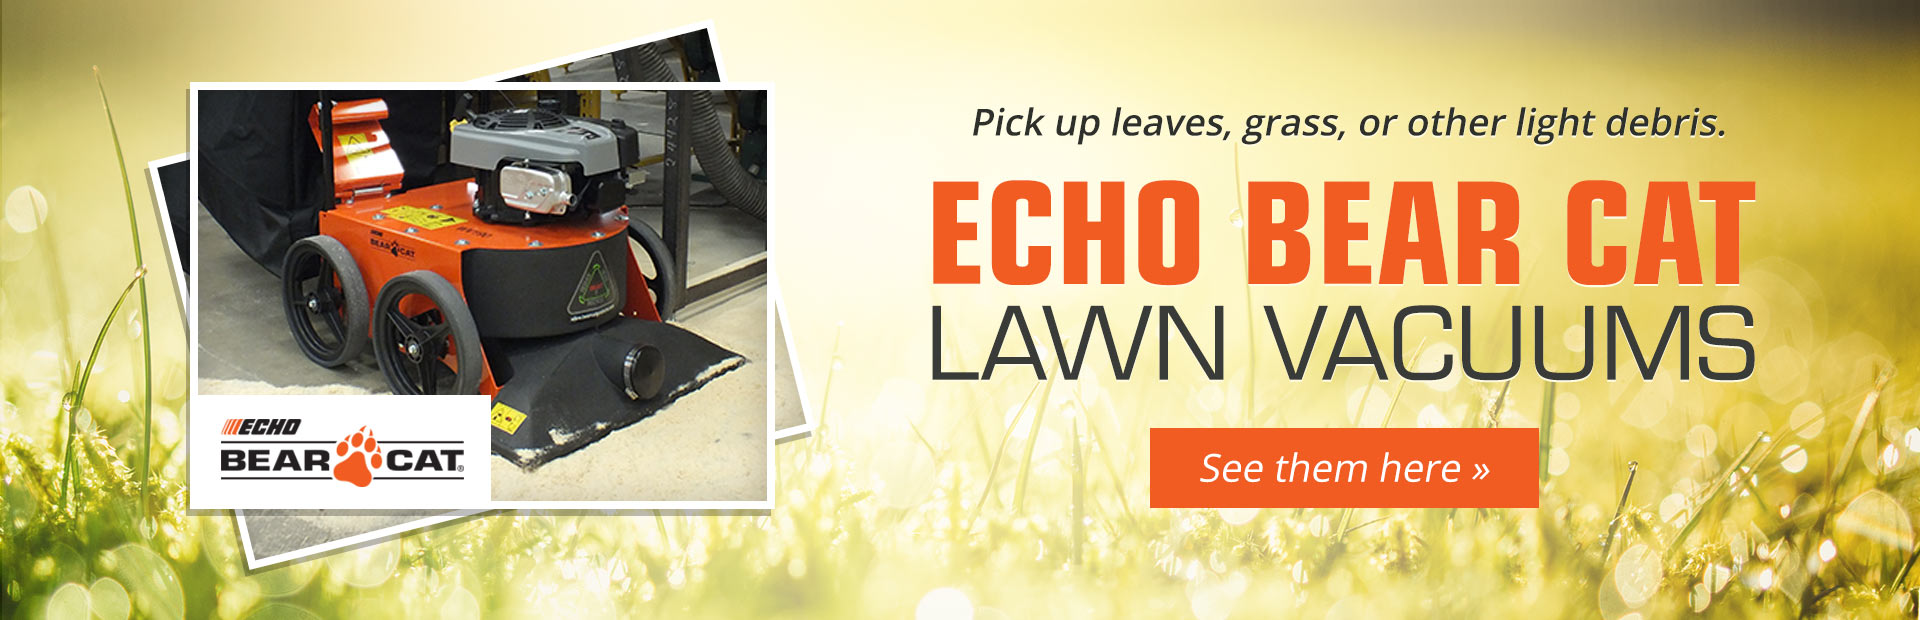 ECHO Bear Cat Lawn Vacuums: Click here to view the models.